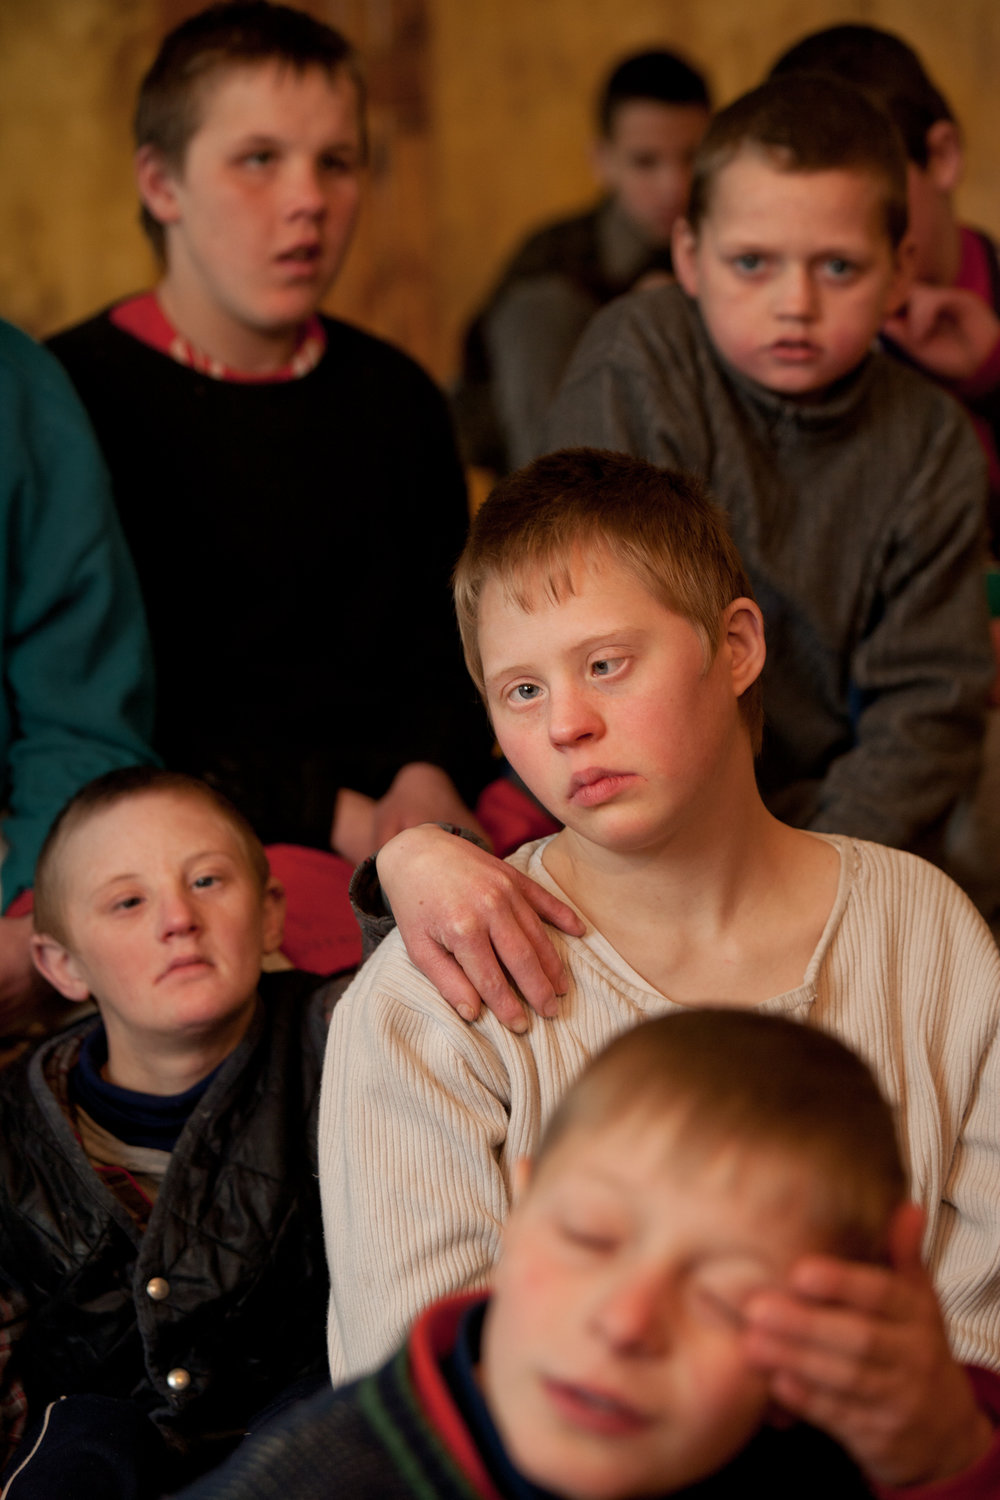 The Children's' Home in Vesnovo receives support from international aid organizations for the victims of Chernobyl to care for abandoned and orphaned children with mental and physical disabilities.  Vesnovo, Belarus